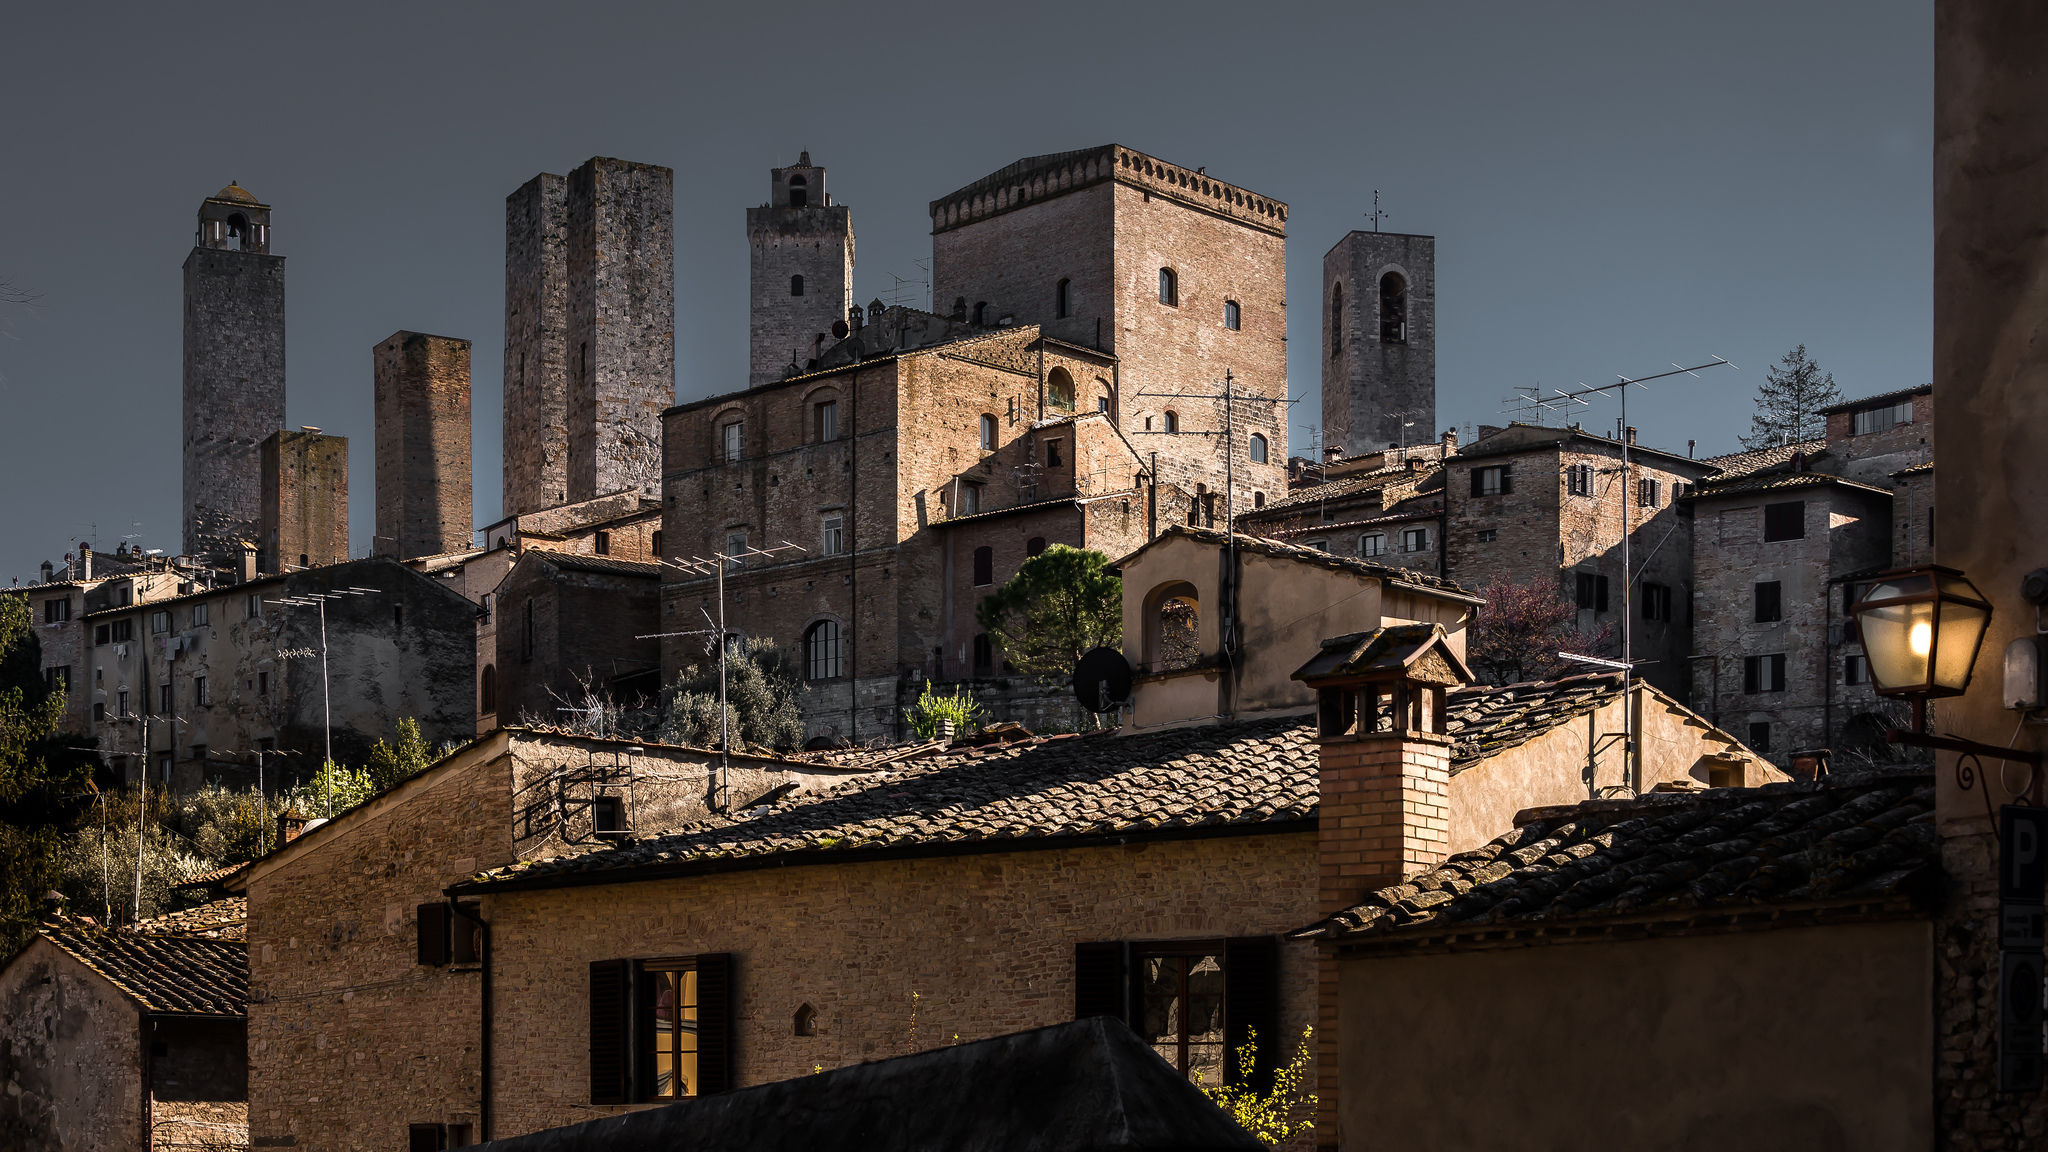 San Gimignano - Studded with towers in a sea of hills